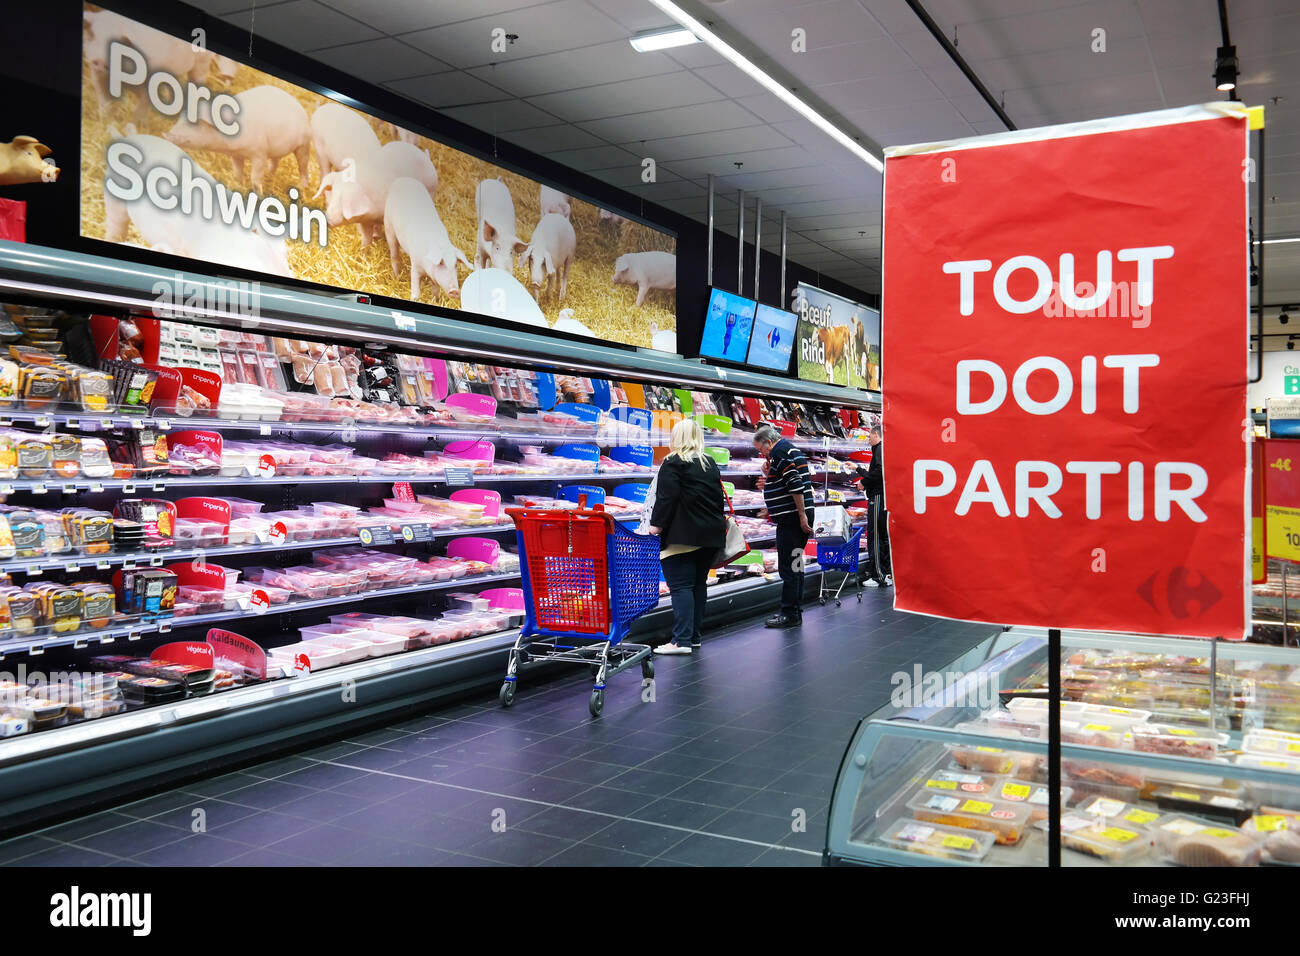 Tout doit partir - everything must go - sign packaged meat in refrigerated section of a Hypermarket. - Stock Image